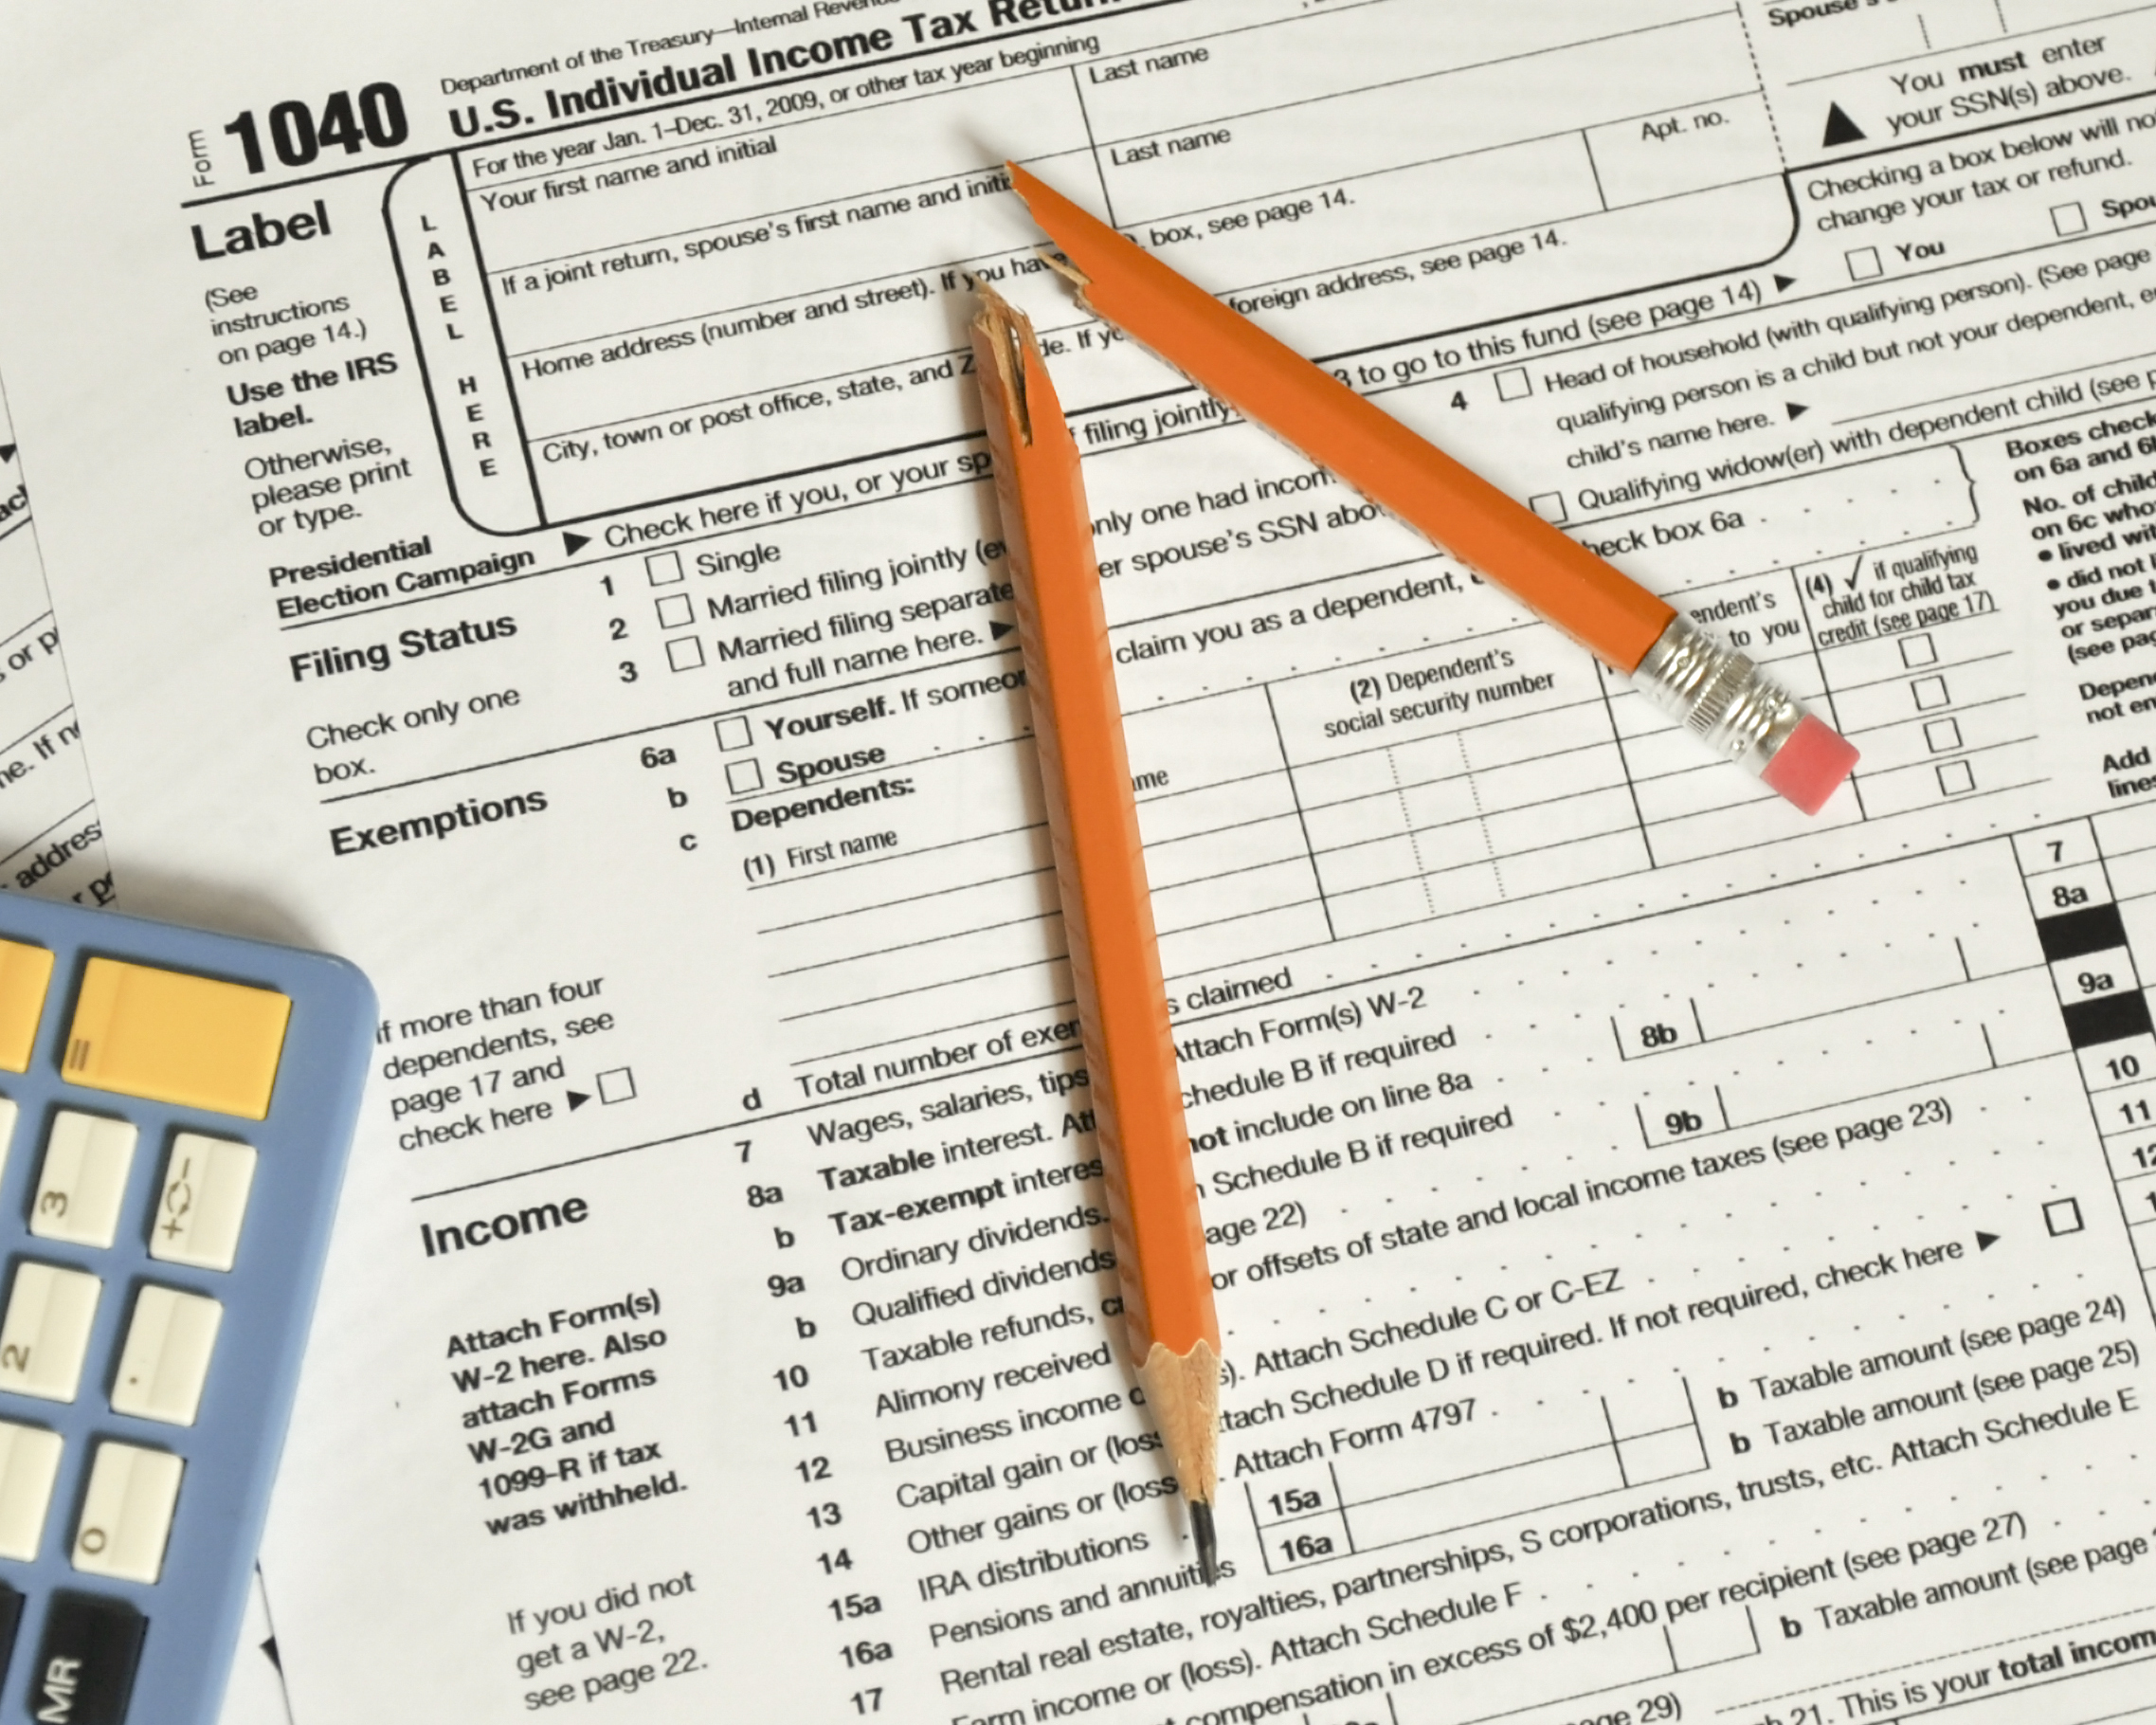 Instructions For Filing Form 1096